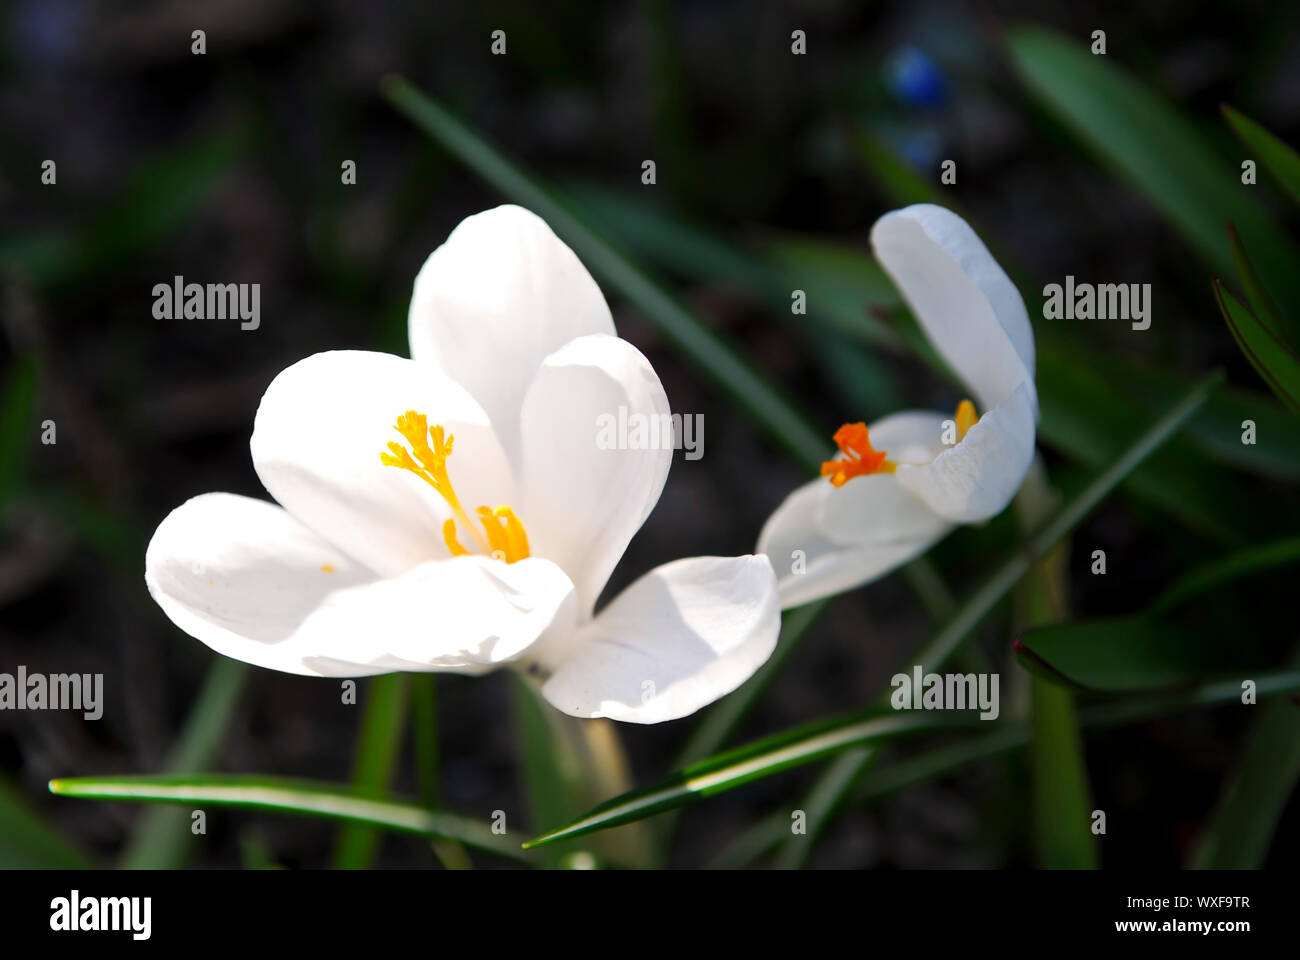 Closeup of white crocus flower with green background Stock Photo